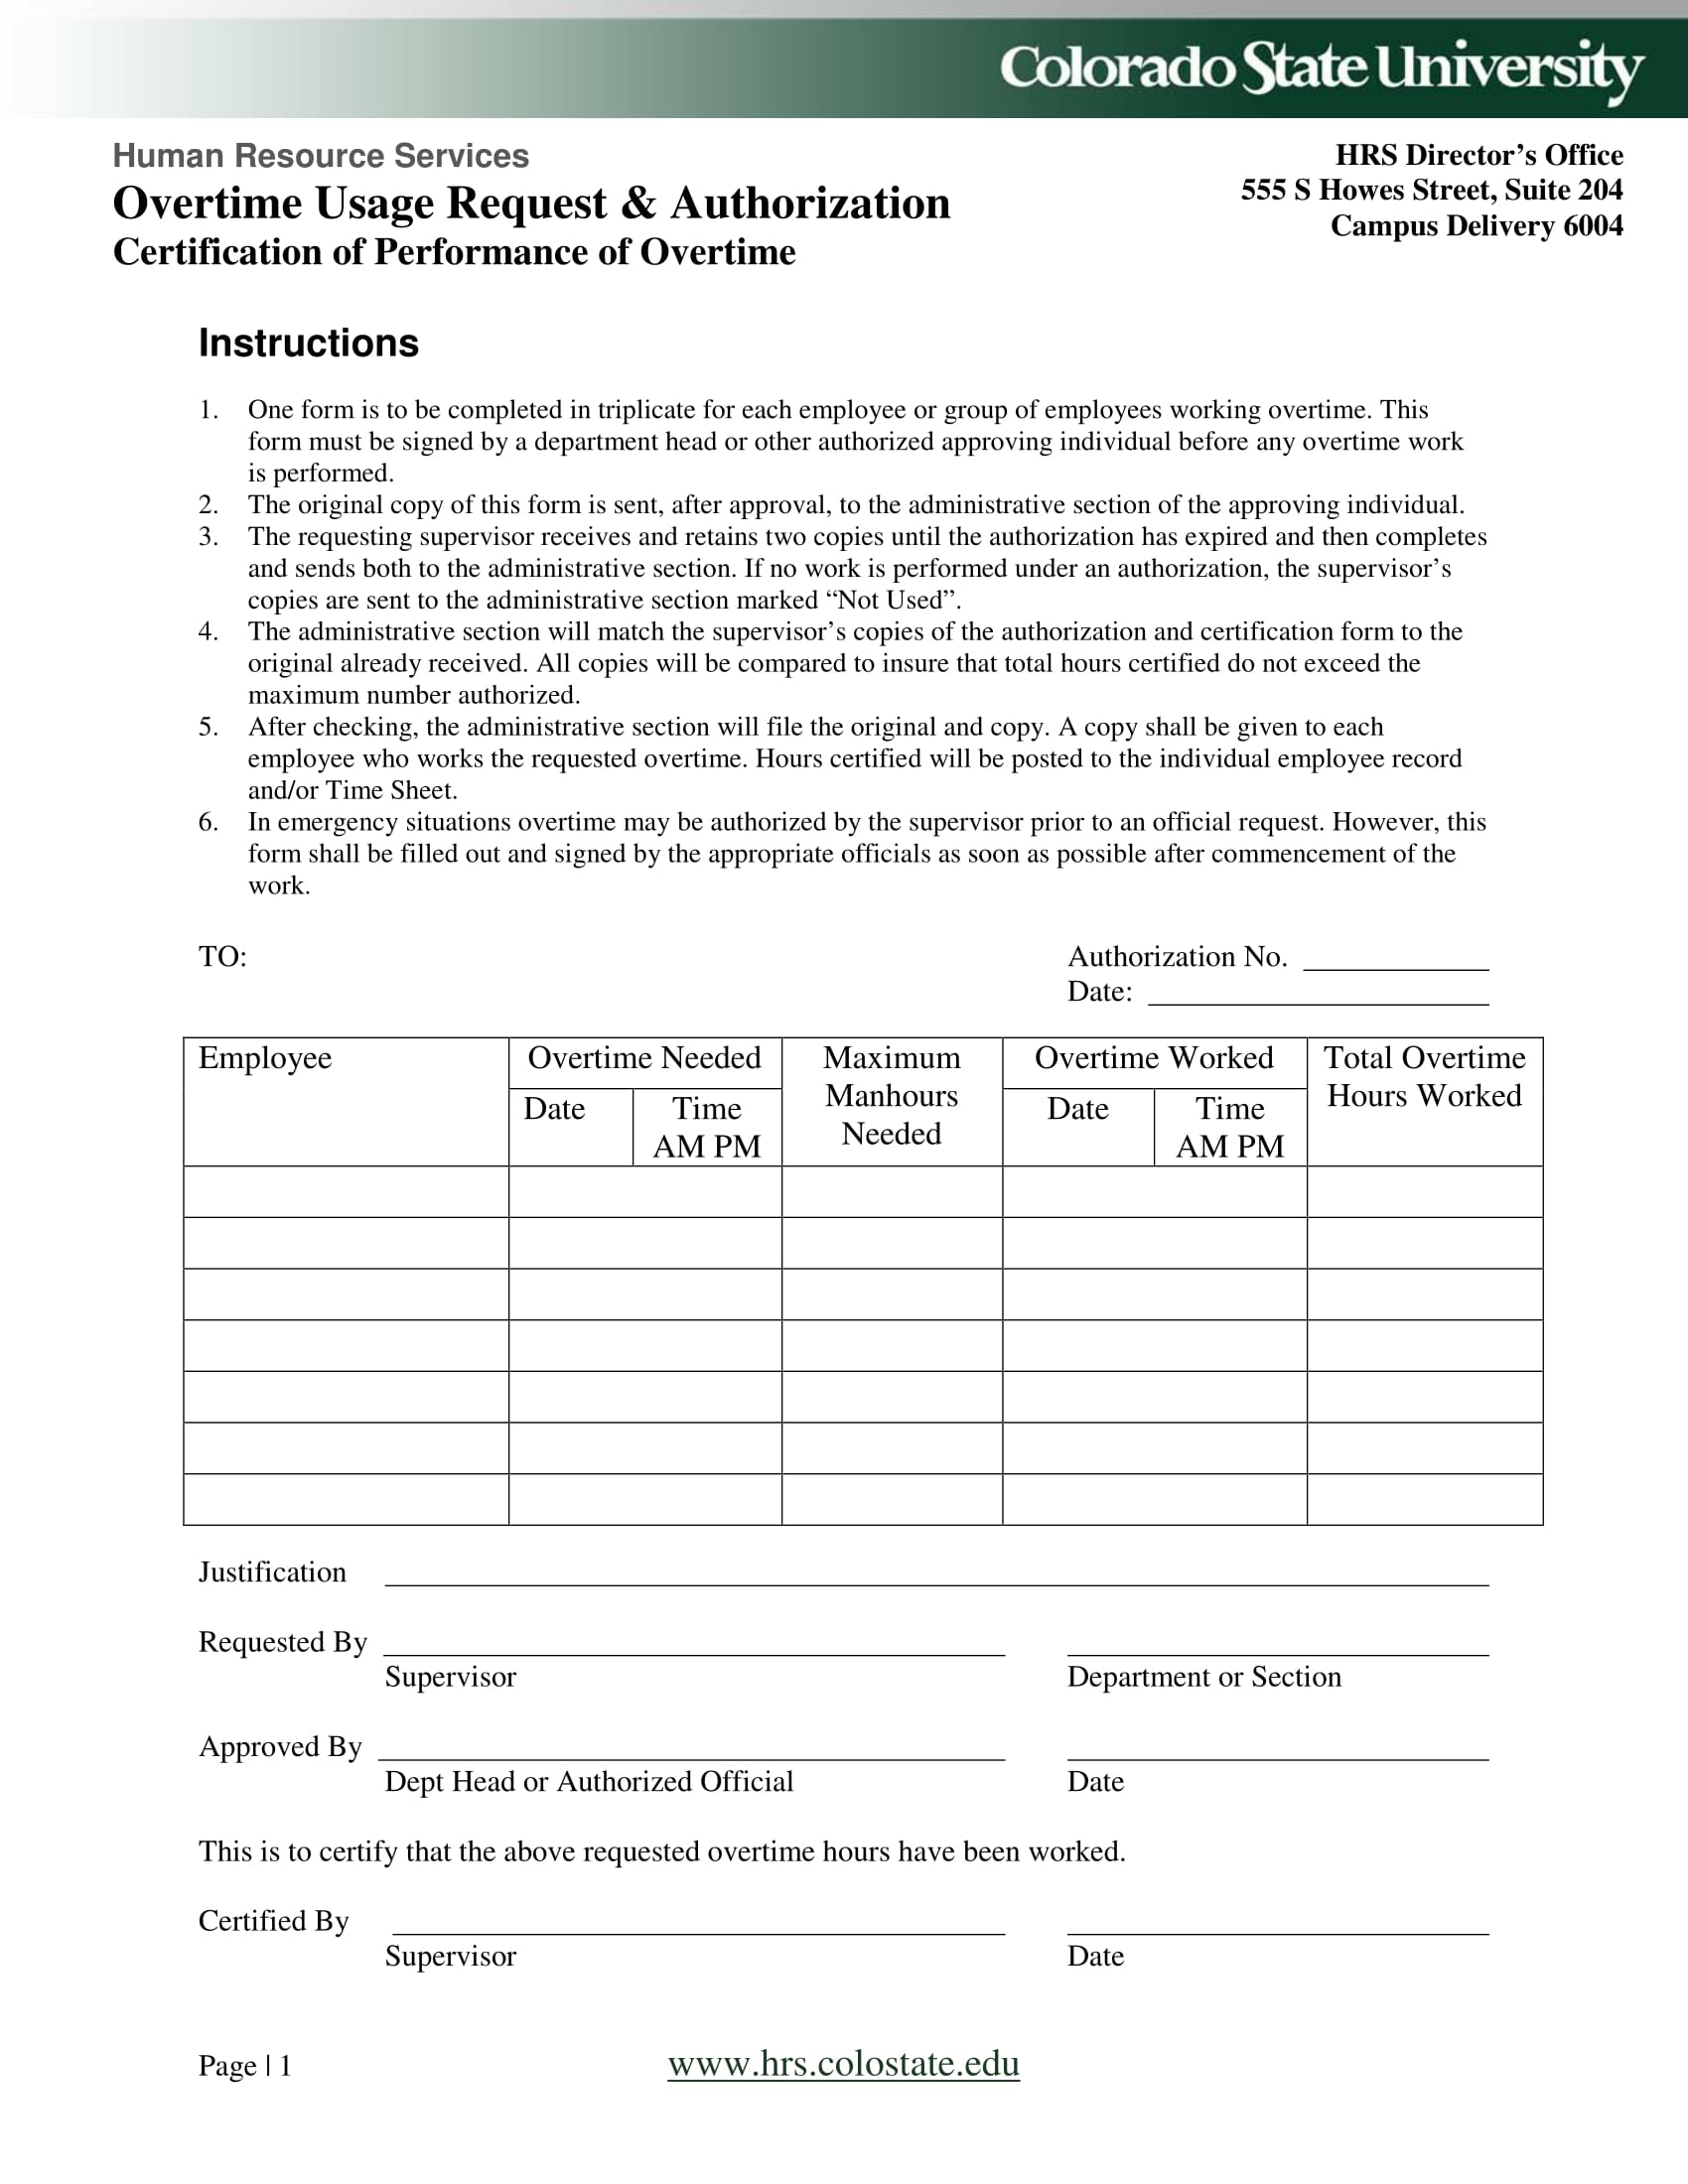 overtime usage request authorization form 1